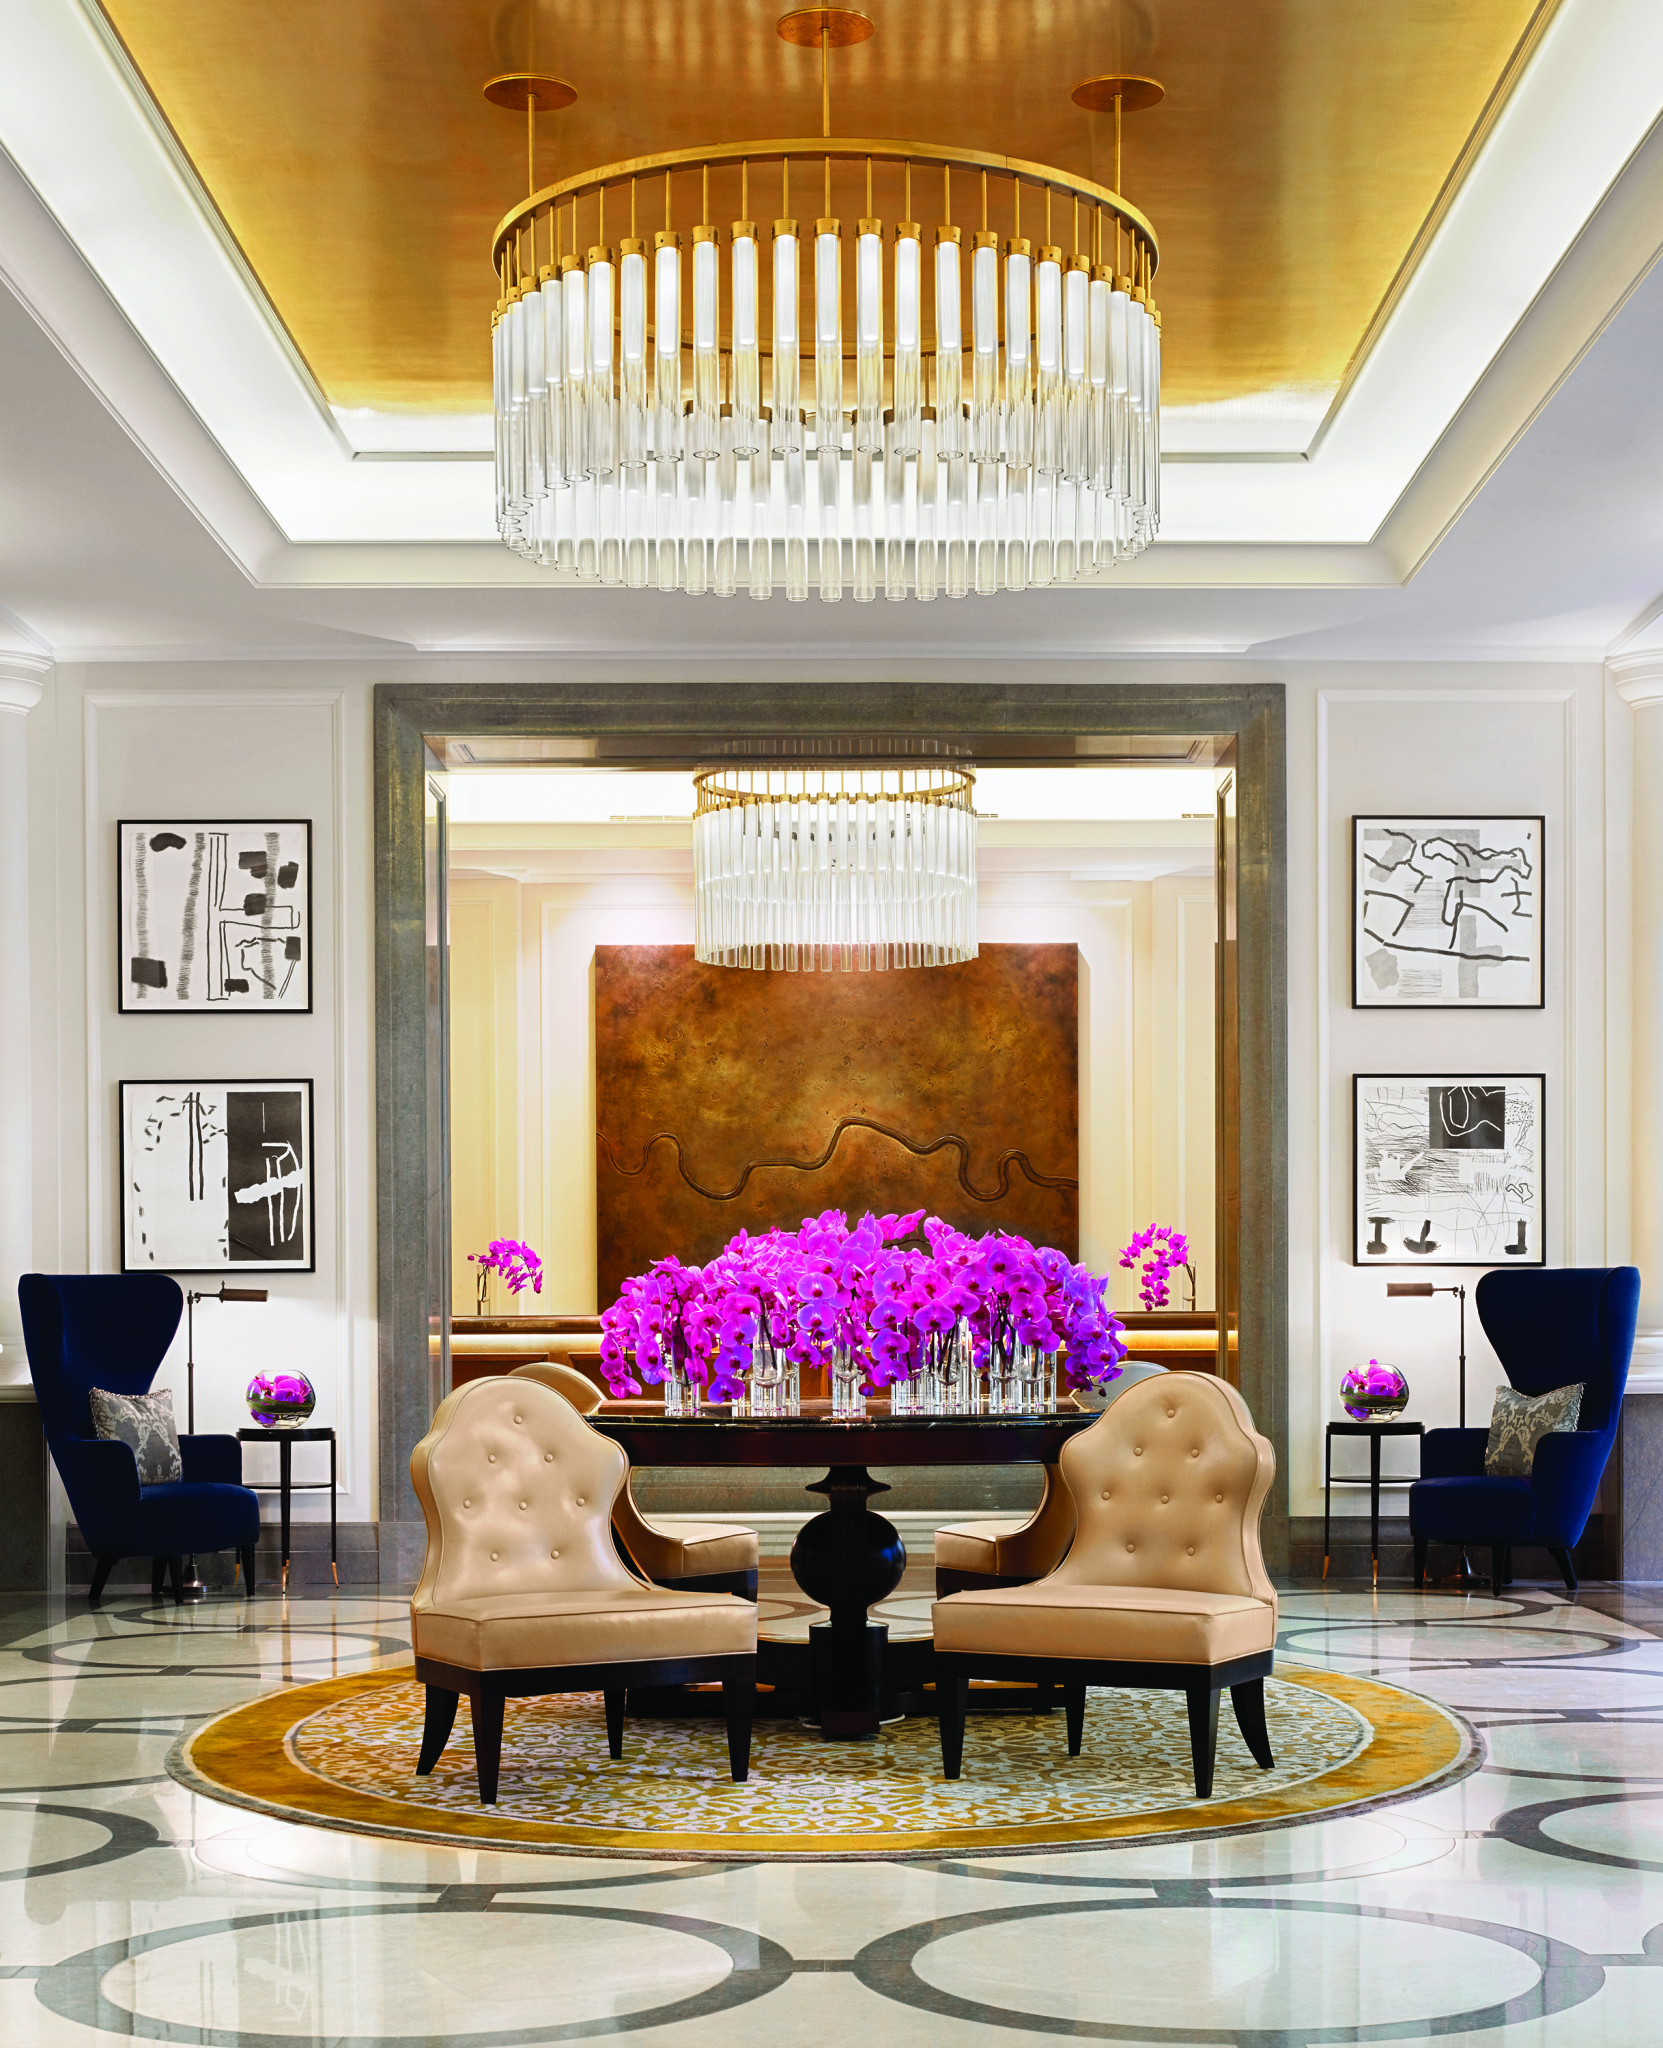 Royal weekend in corinthia hotel london the lux traveller for Design hotel london